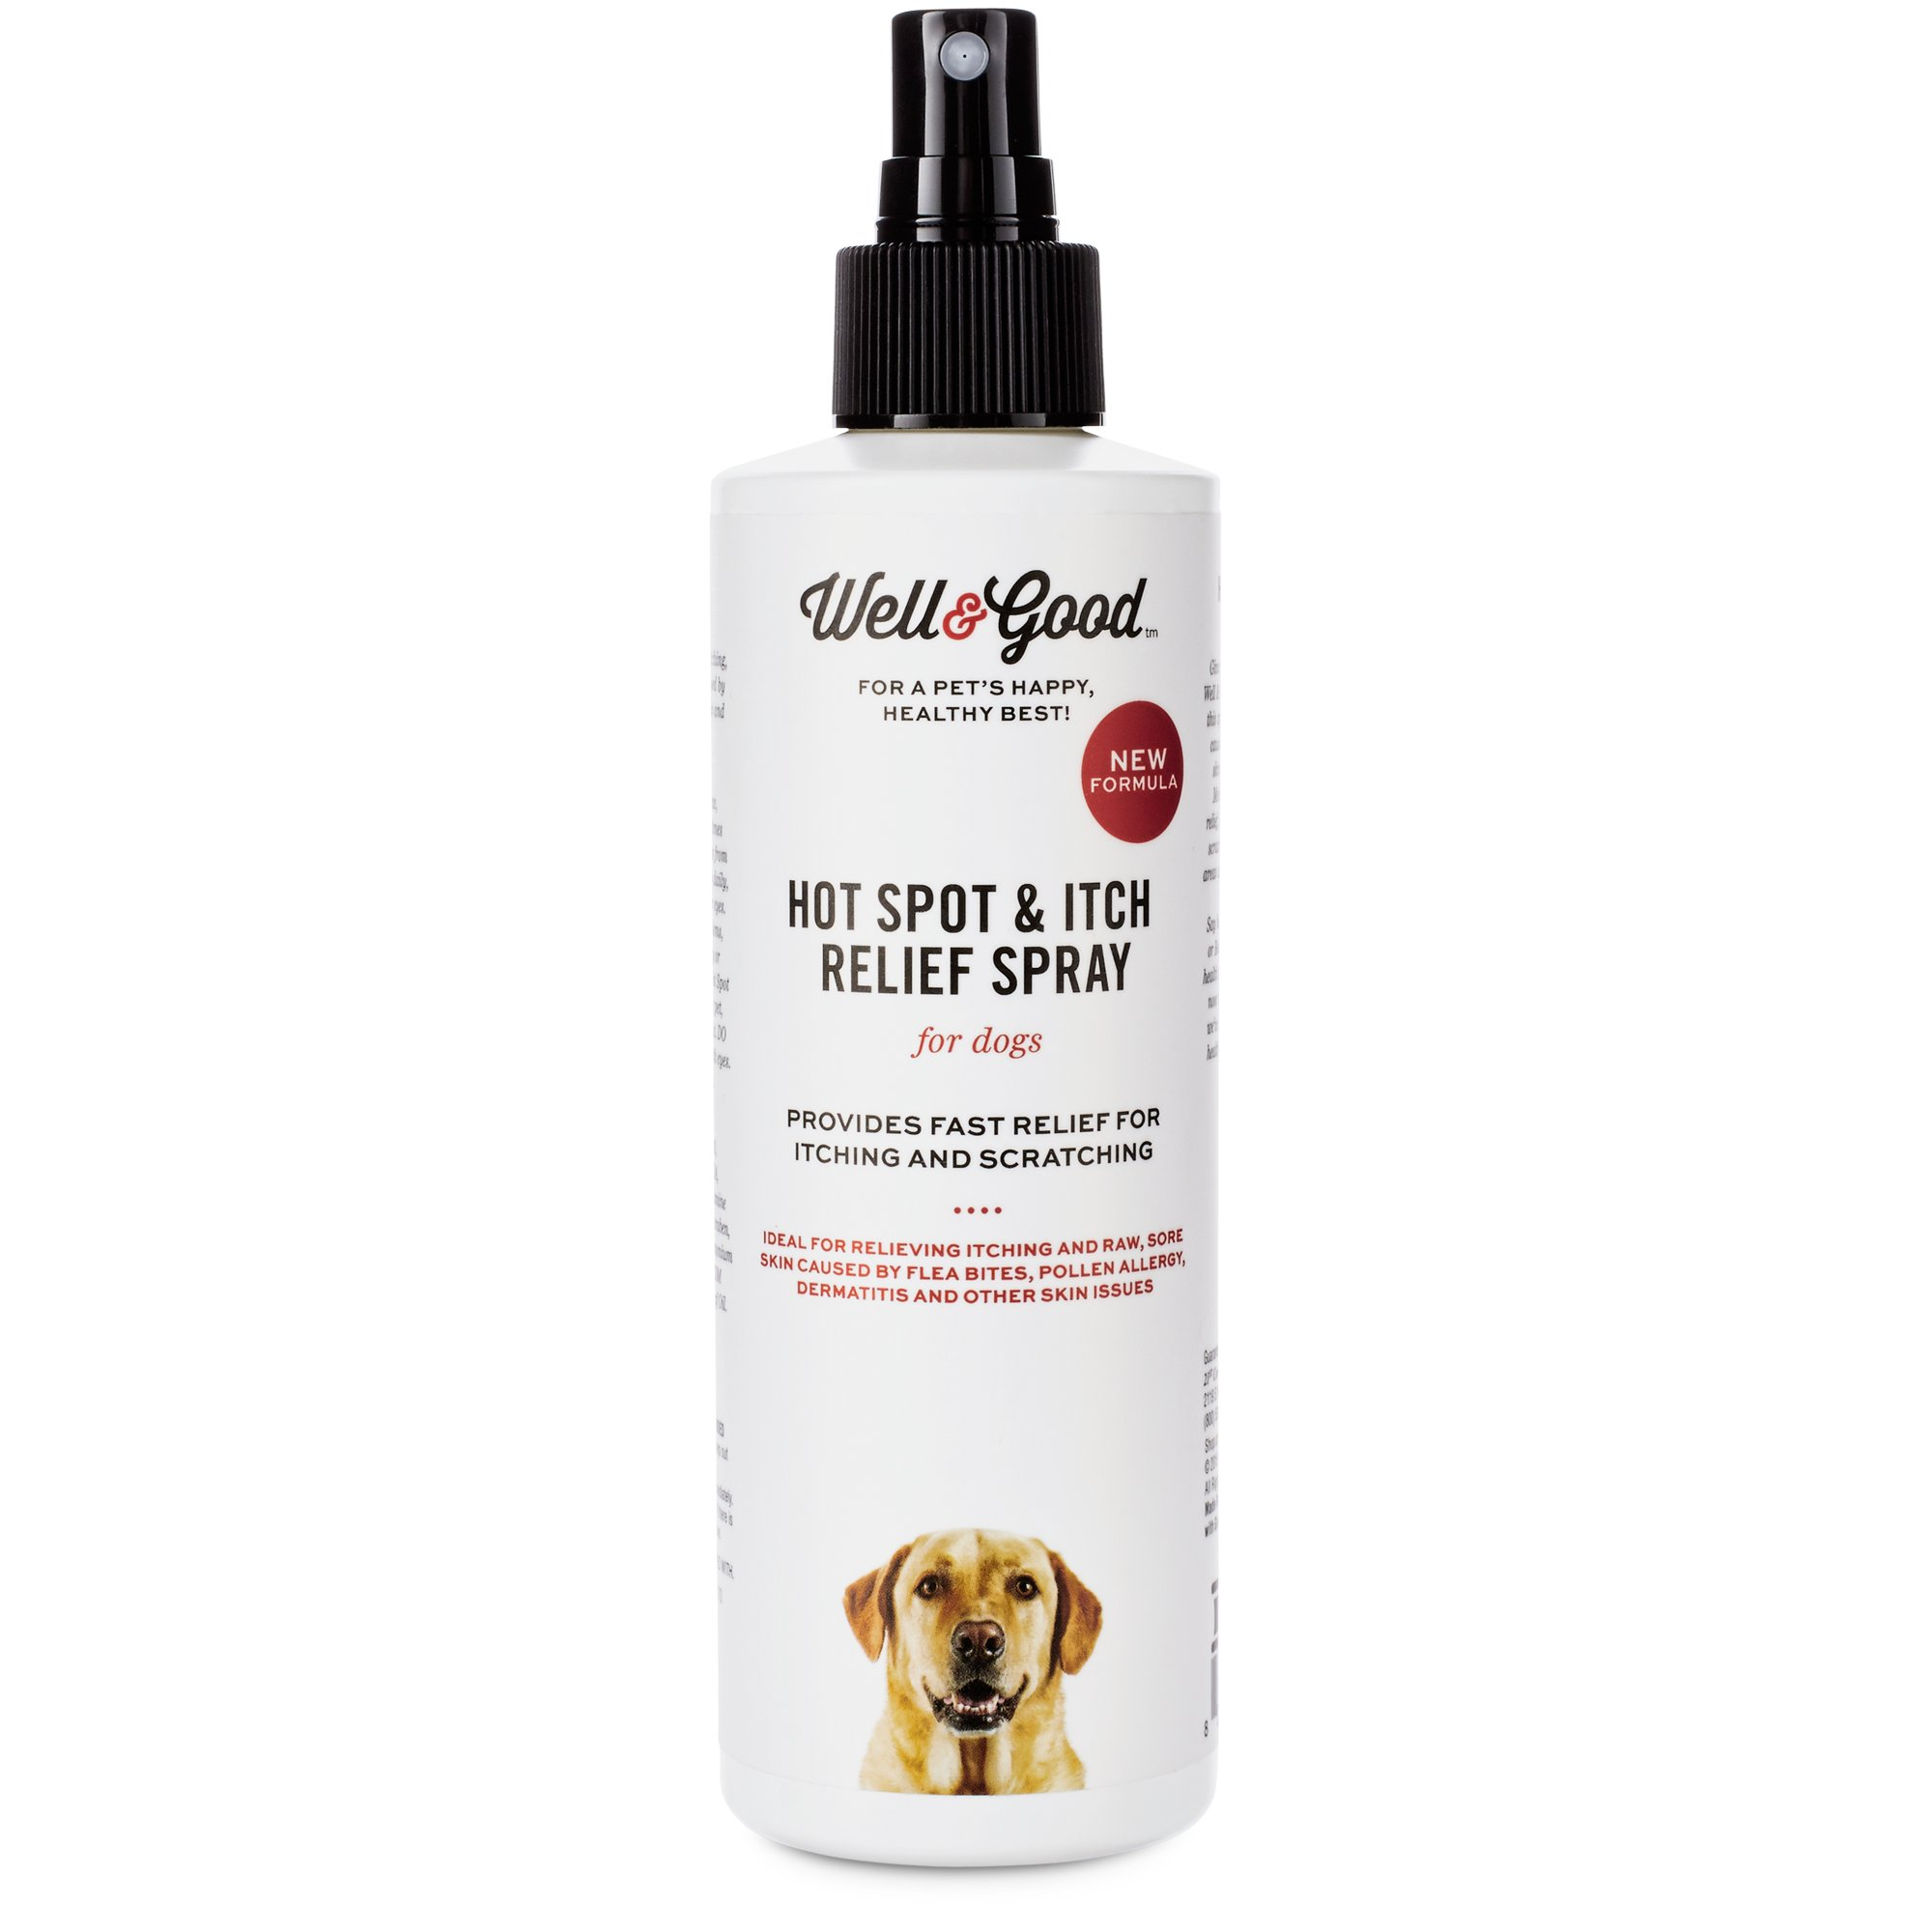 Well & Good Hot Spot & Itch Relief Dog Spray